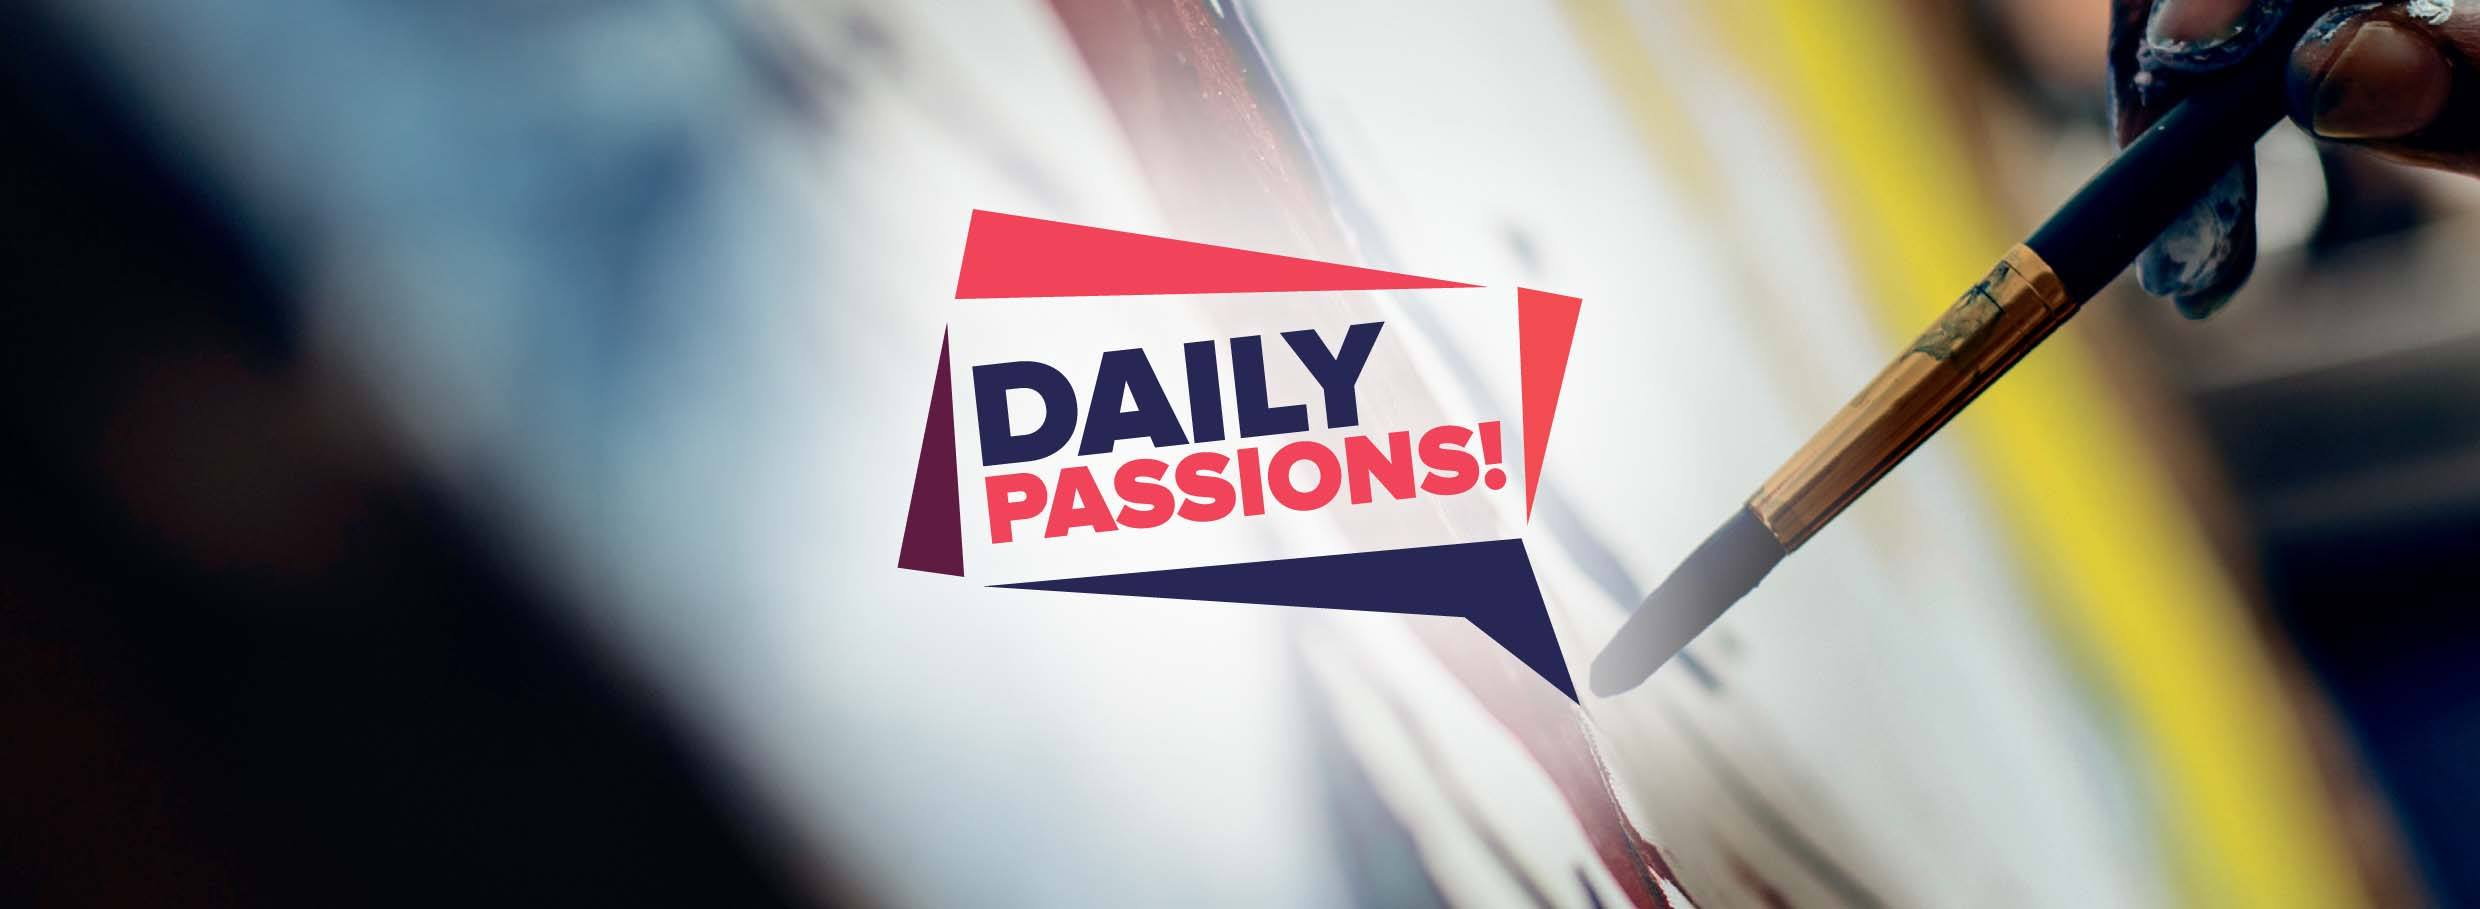 www-daily-passions-com